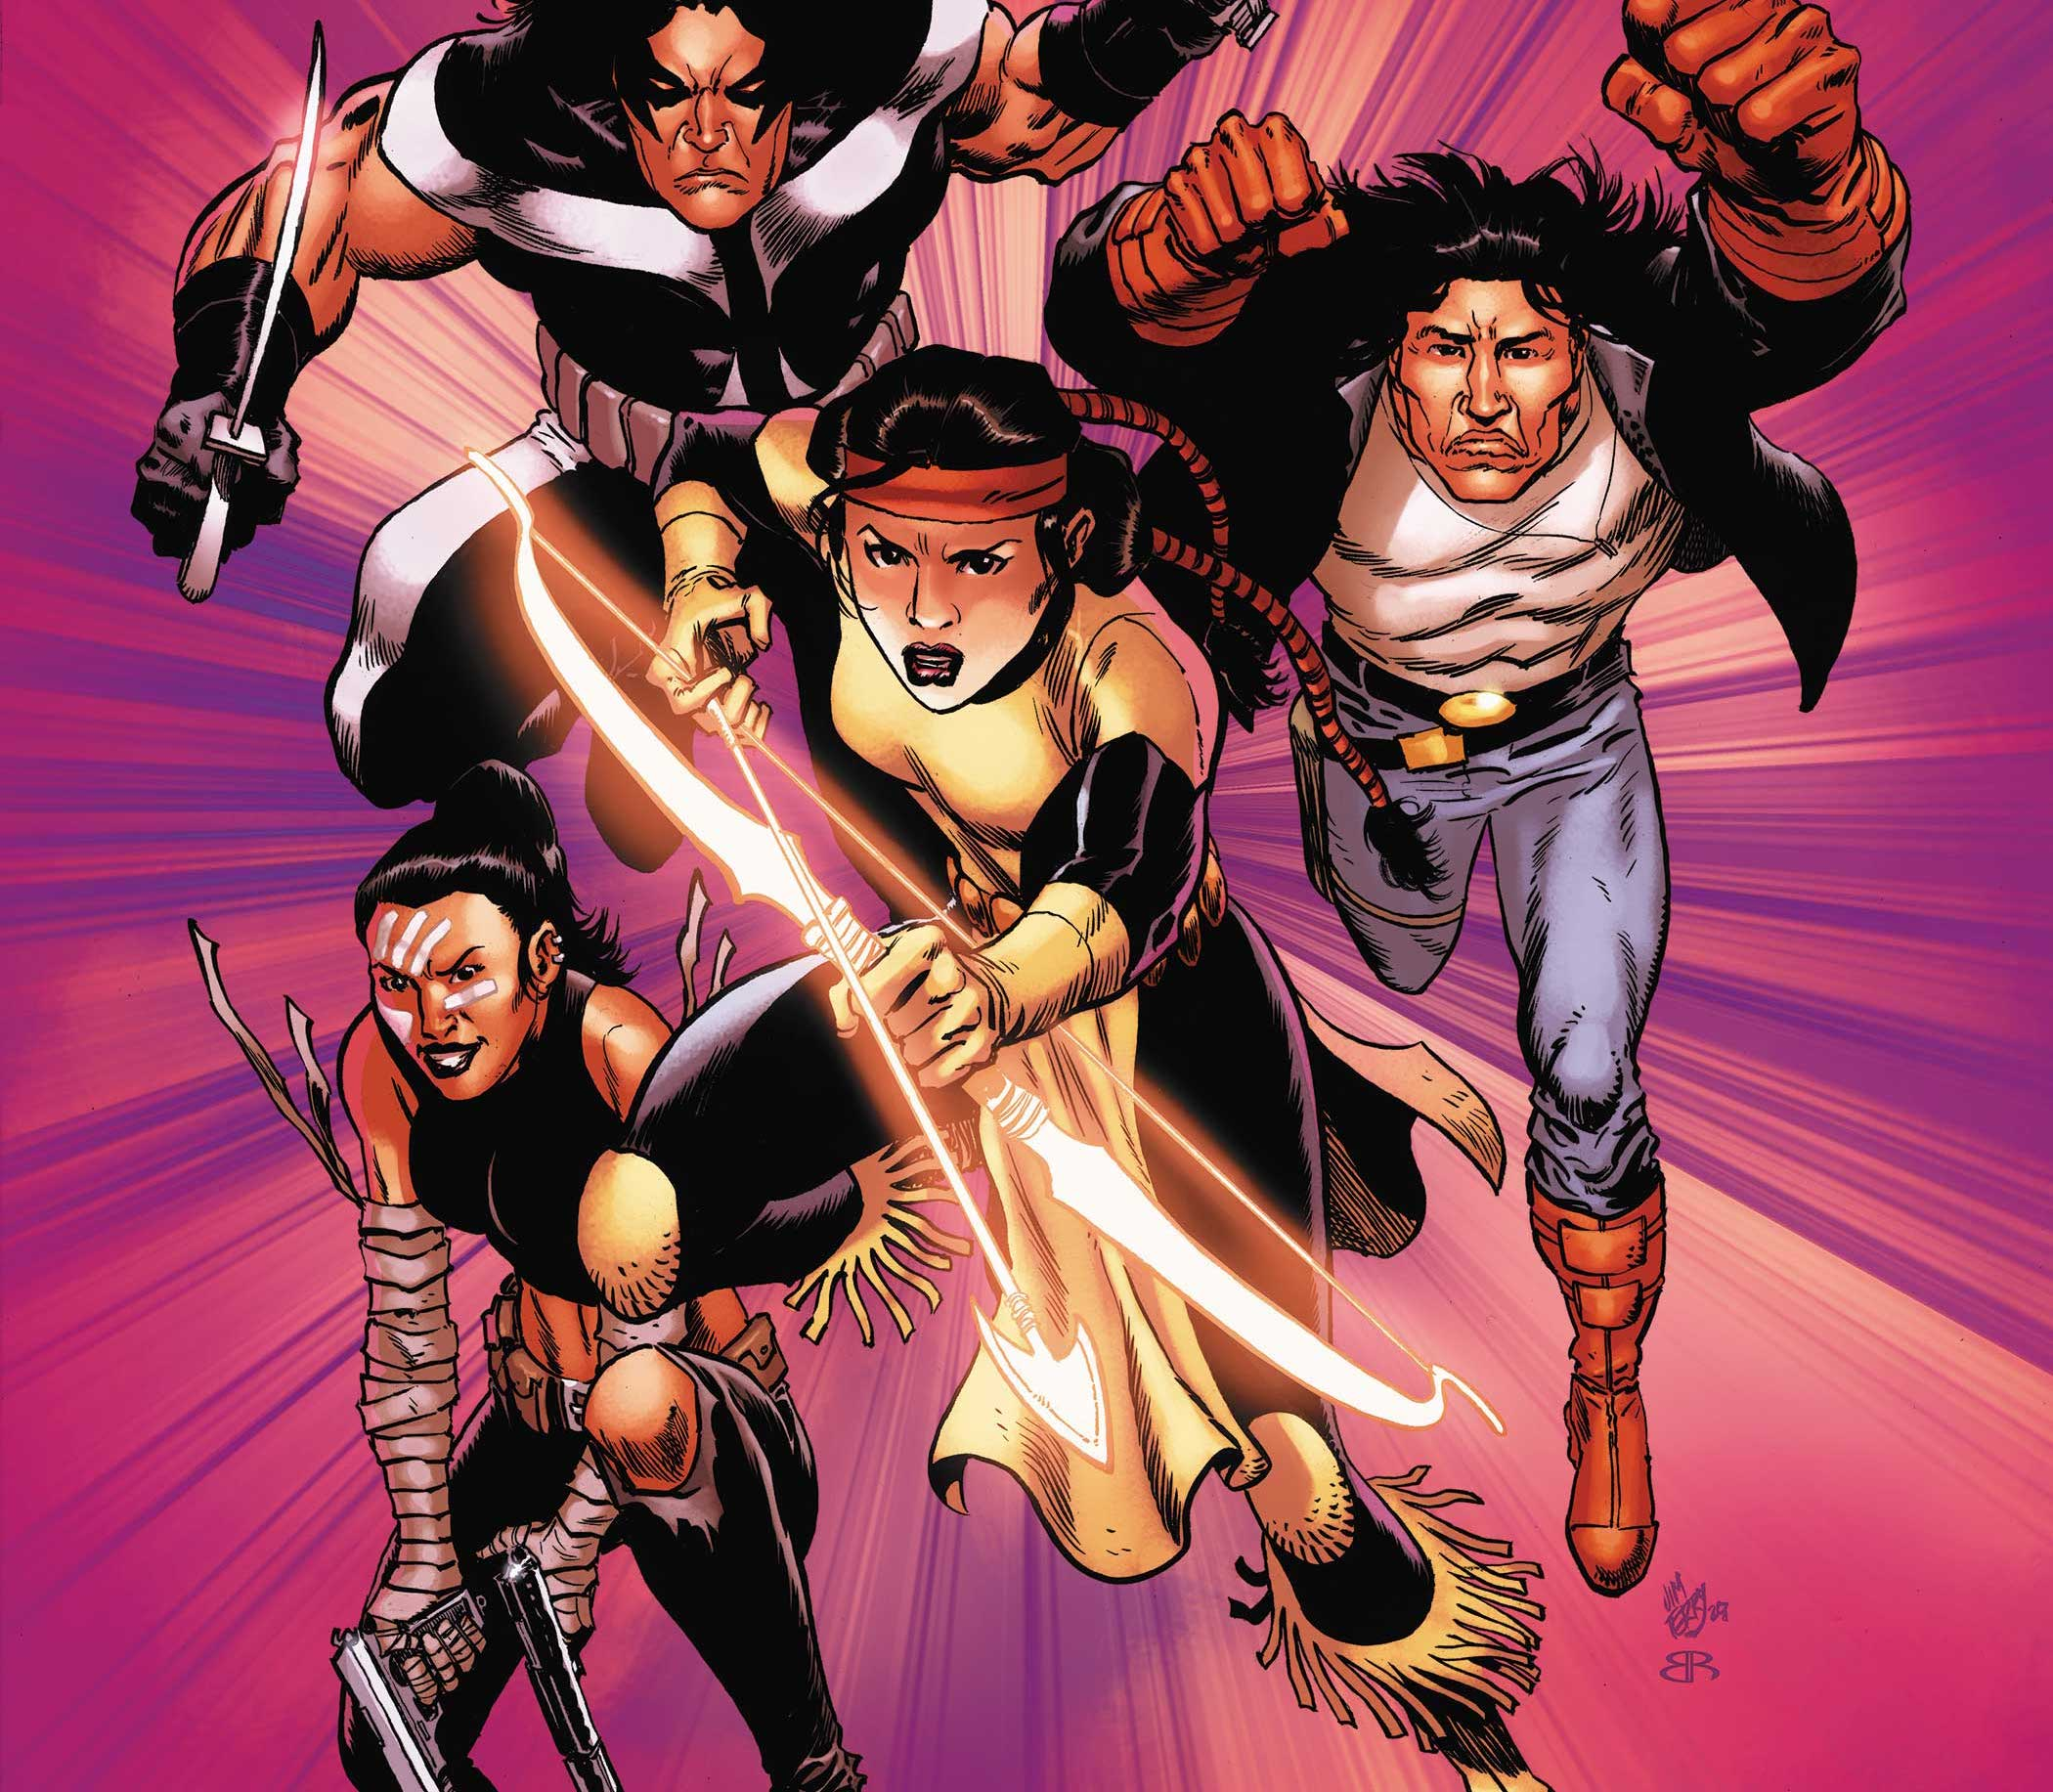 MARVEL'S VOICES: INDIGENOUS VOICES #1 kicks off the next phase of Marvel's expandedMarvel's Voicesprogram.